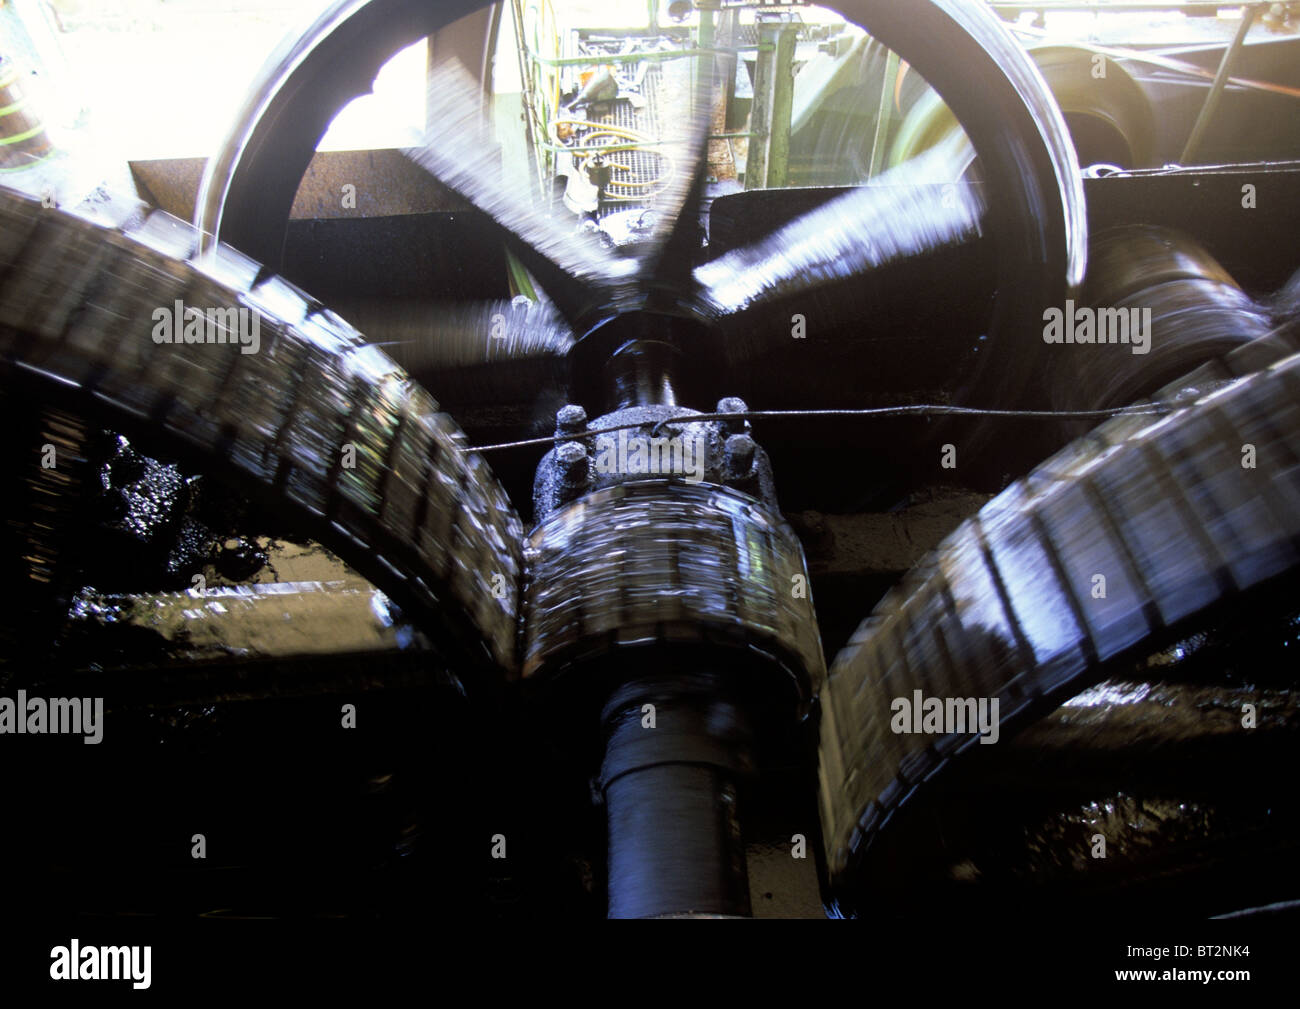 Old Gear Machine, oiled up and used for rum production. - Stock Image